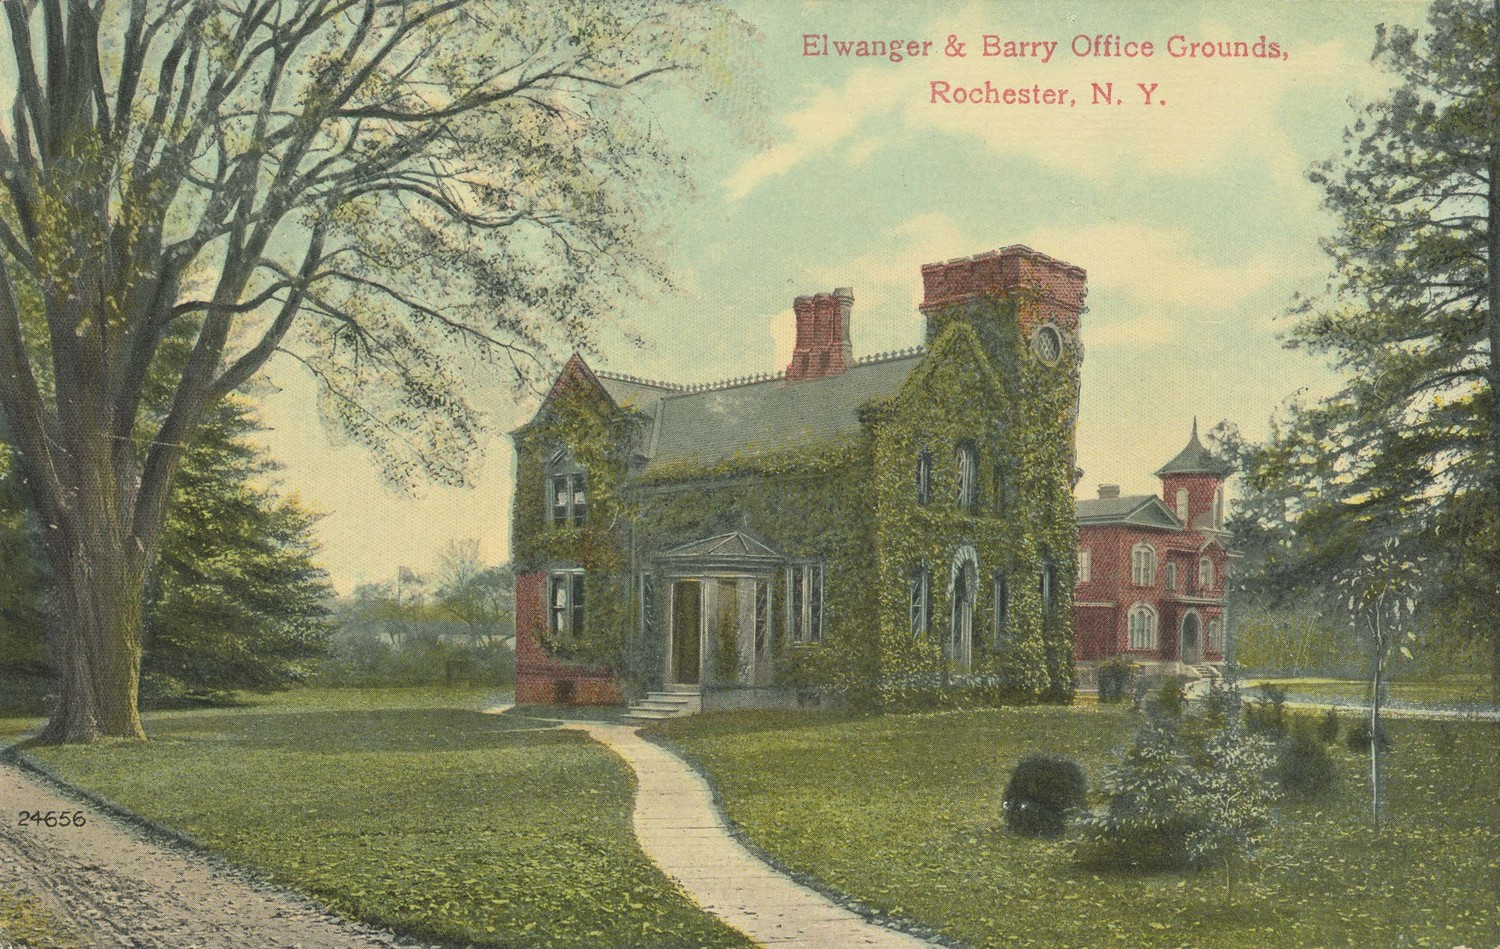 Ellwanger and Barry Office Grounds. Rochester N.Y.